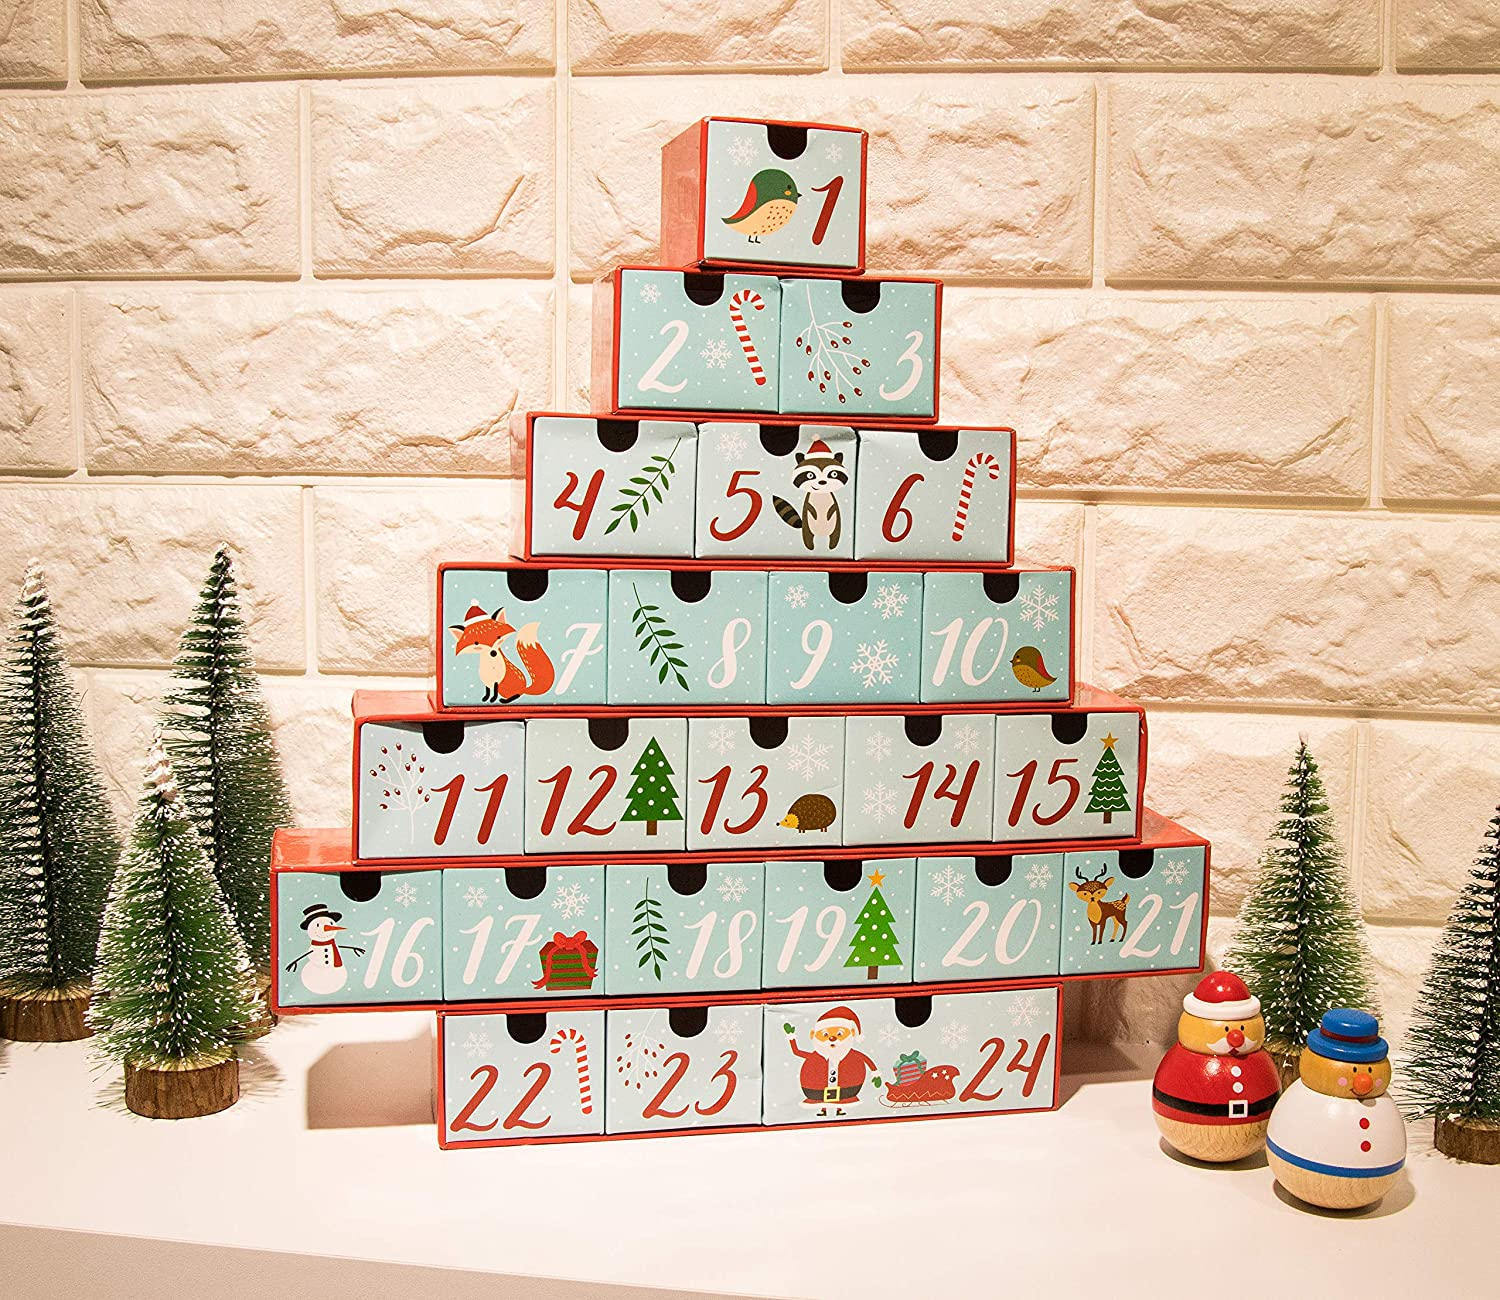 Christmas Tree Shaped Table Decoration Juvale Advent Calendar Large Holiday Treasure Box Christmas Countdown Red Cyan 24 Numbered Drawers 12 x 12.6 x 2.3 Inches Winter Festive Designs